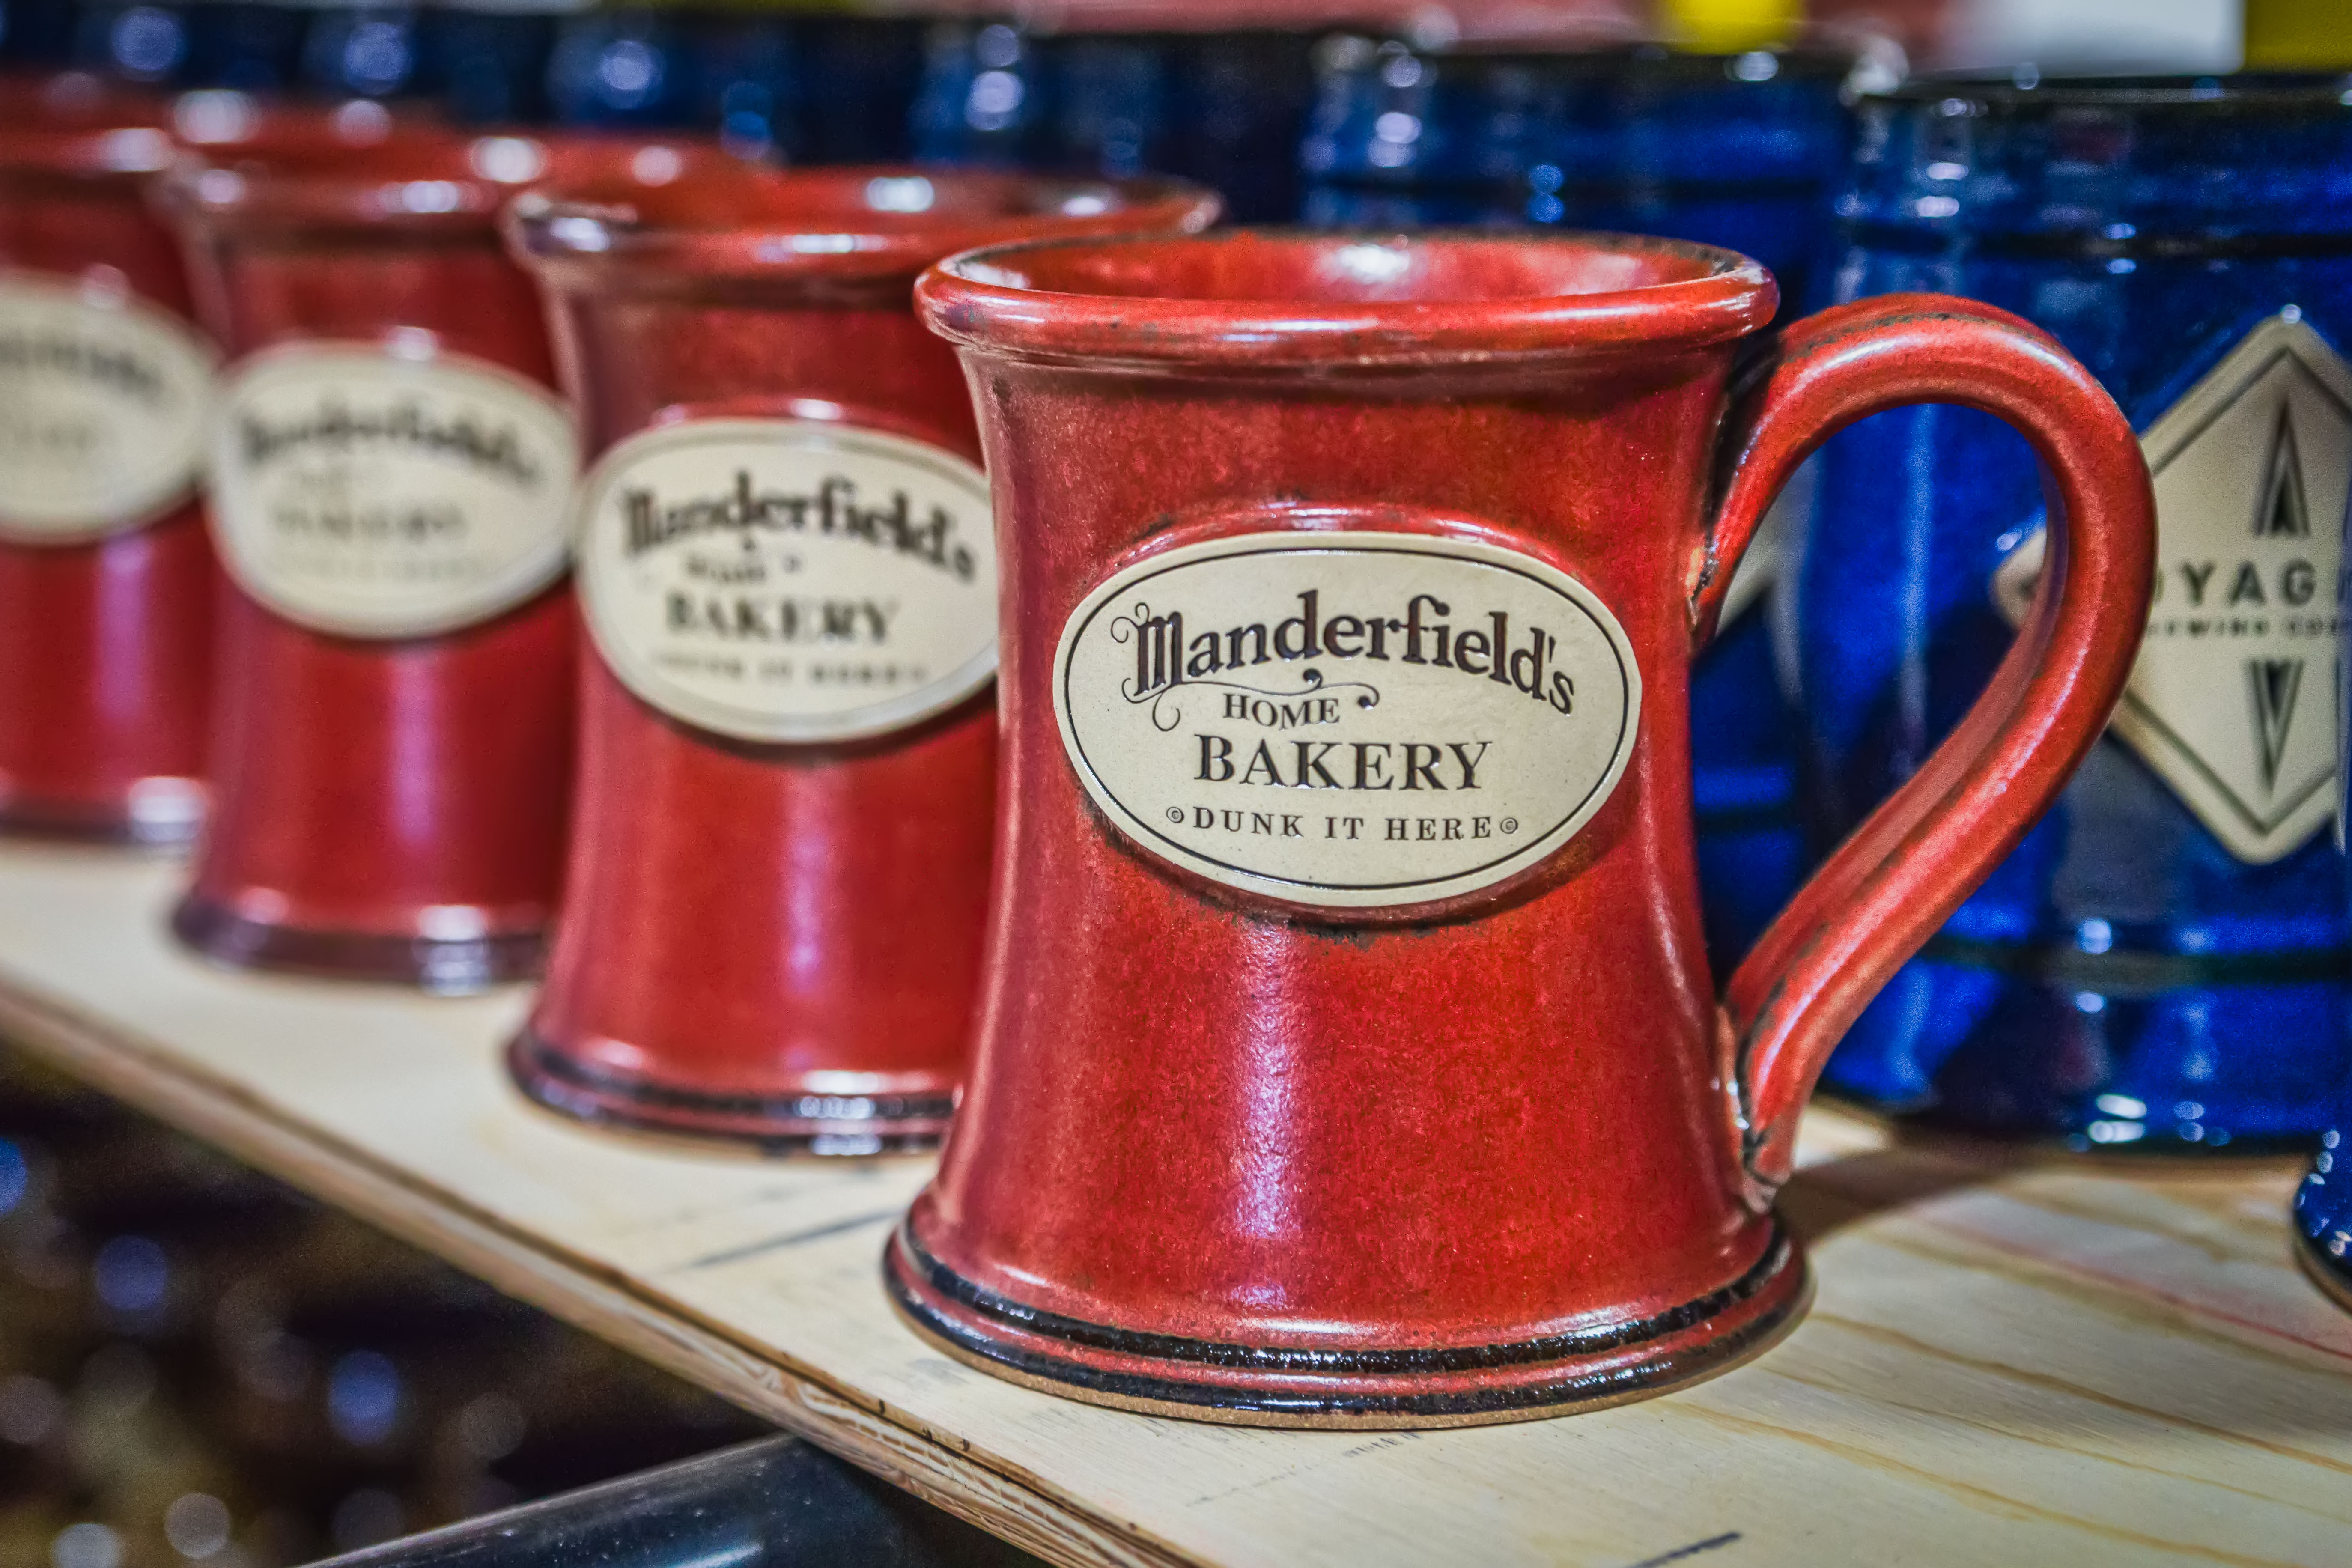 Manderfield's Home Bakery